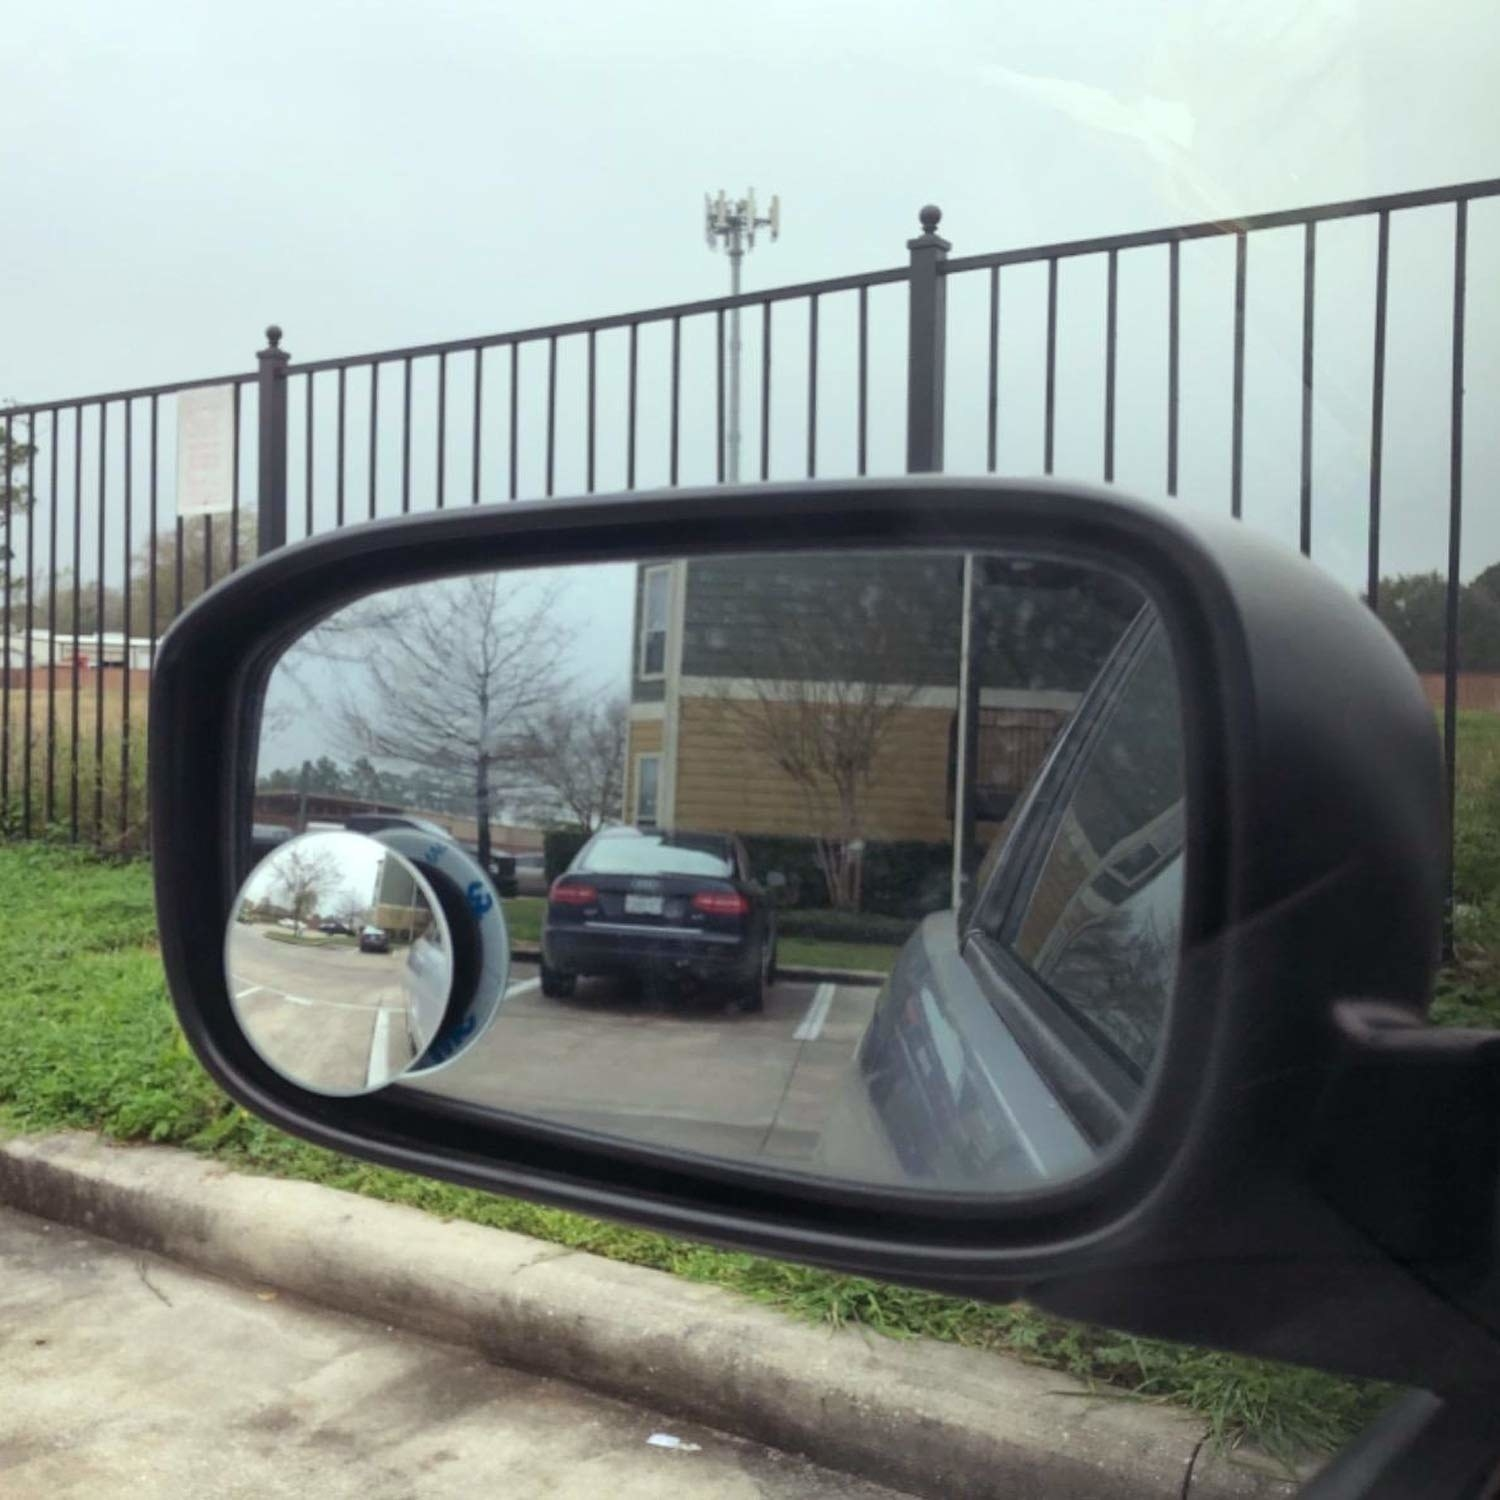 The round mirror on a car's side mirror